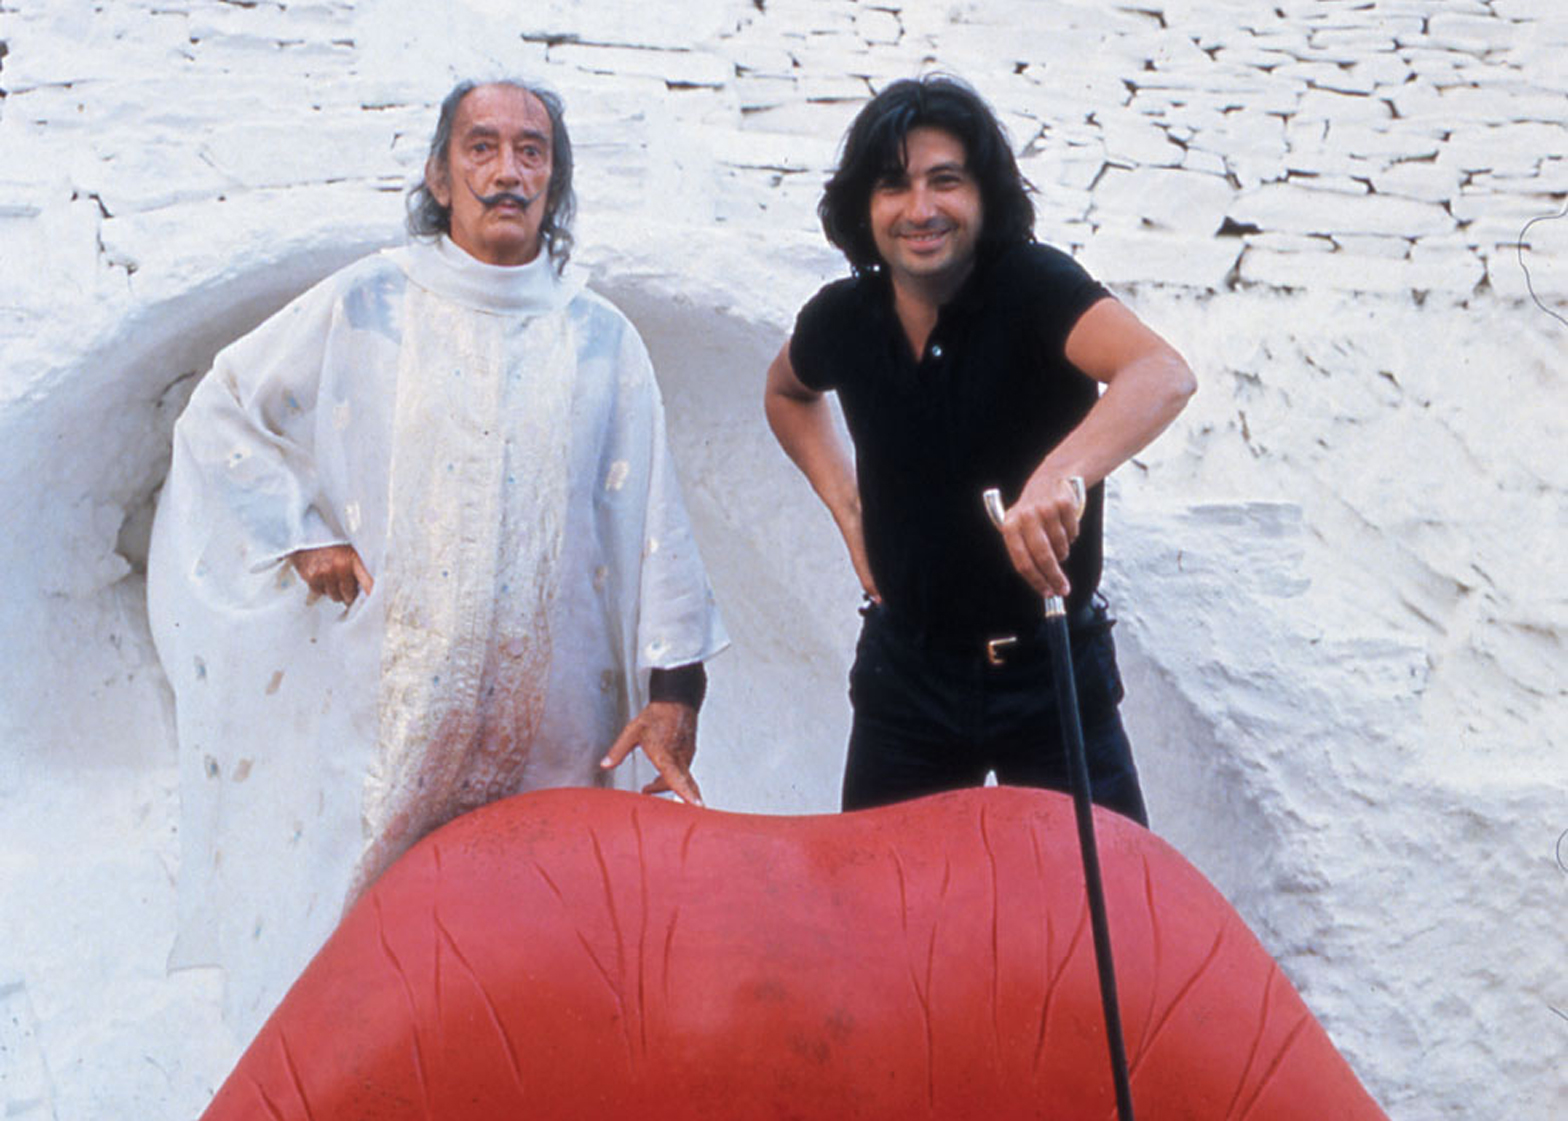 Dalí was %22the most exciting and clever person I've met%22 says collaborator Oscar Tusquets Blanca.jpg